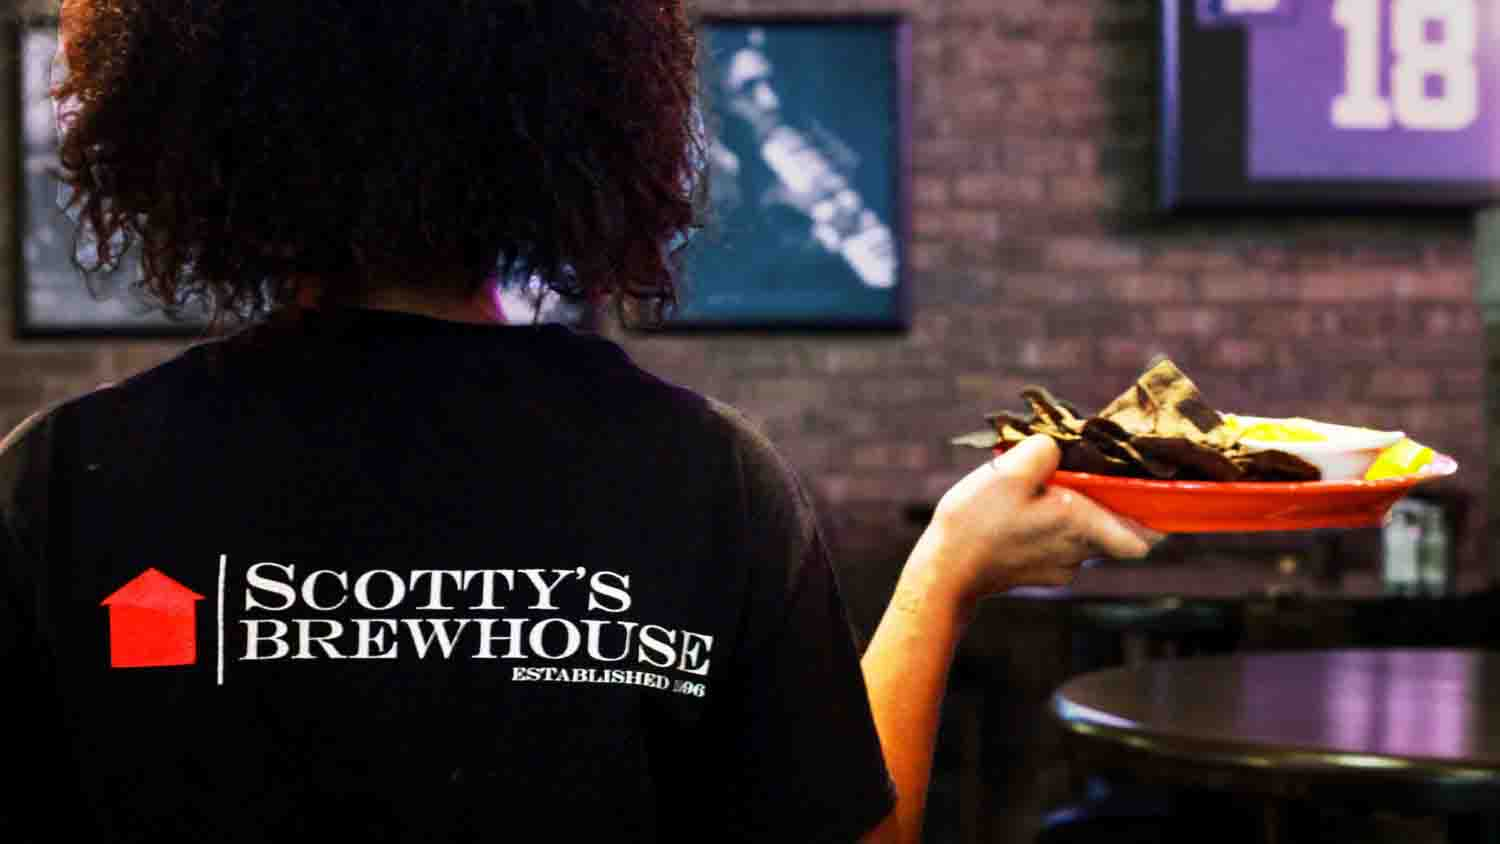 Scotty's Brewhouse